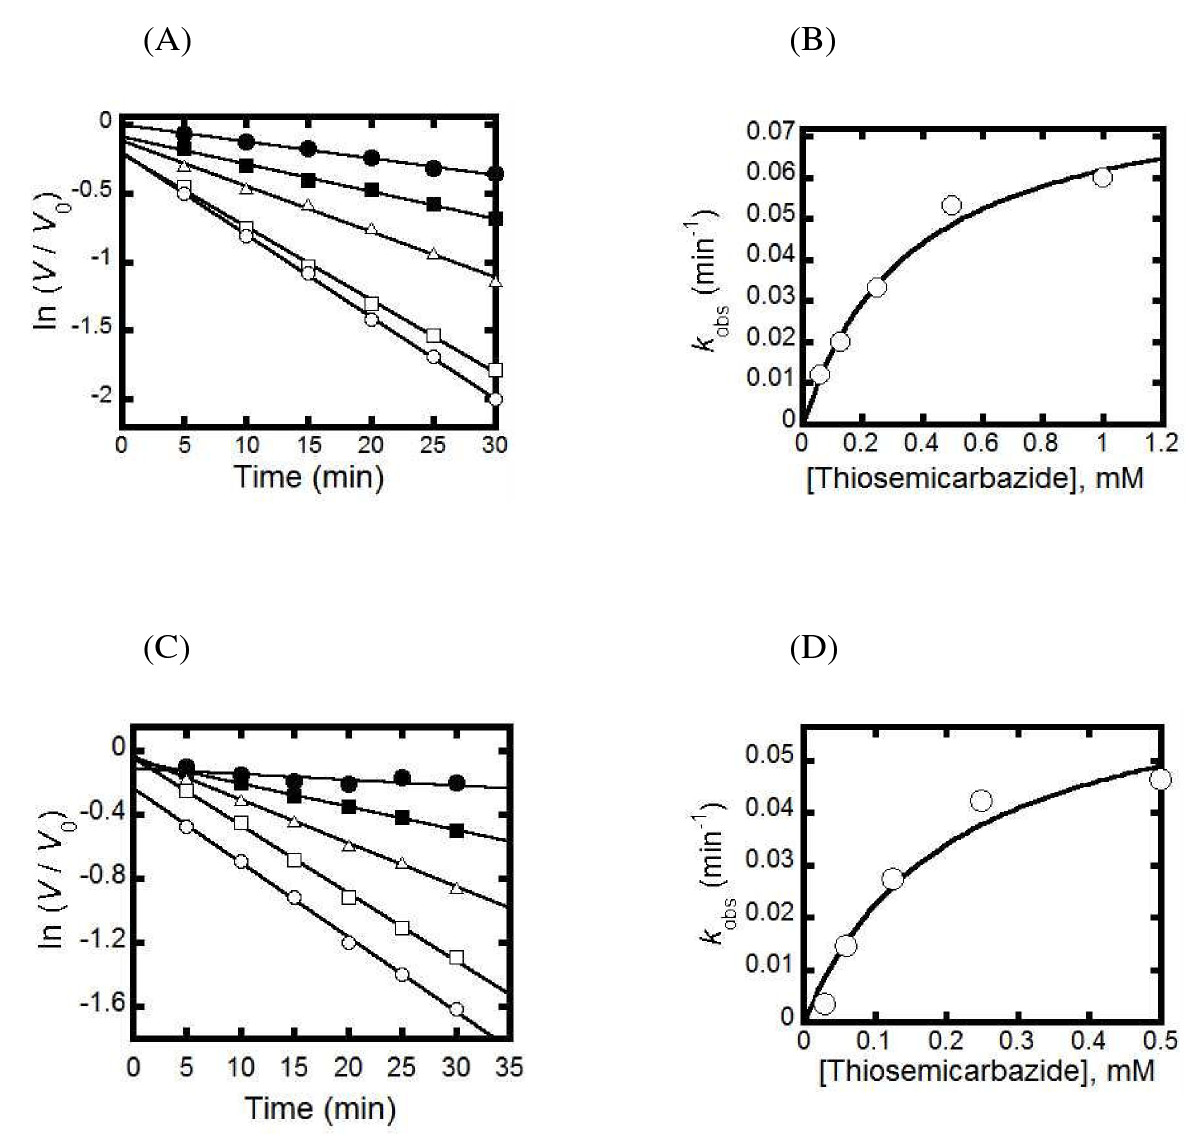 https://static-content.springer.com/image/art%3A10.1186%2F1475-2875-11-194/MediaObjects/12936_2012_Article_2487_Fig1_HTML.jpg